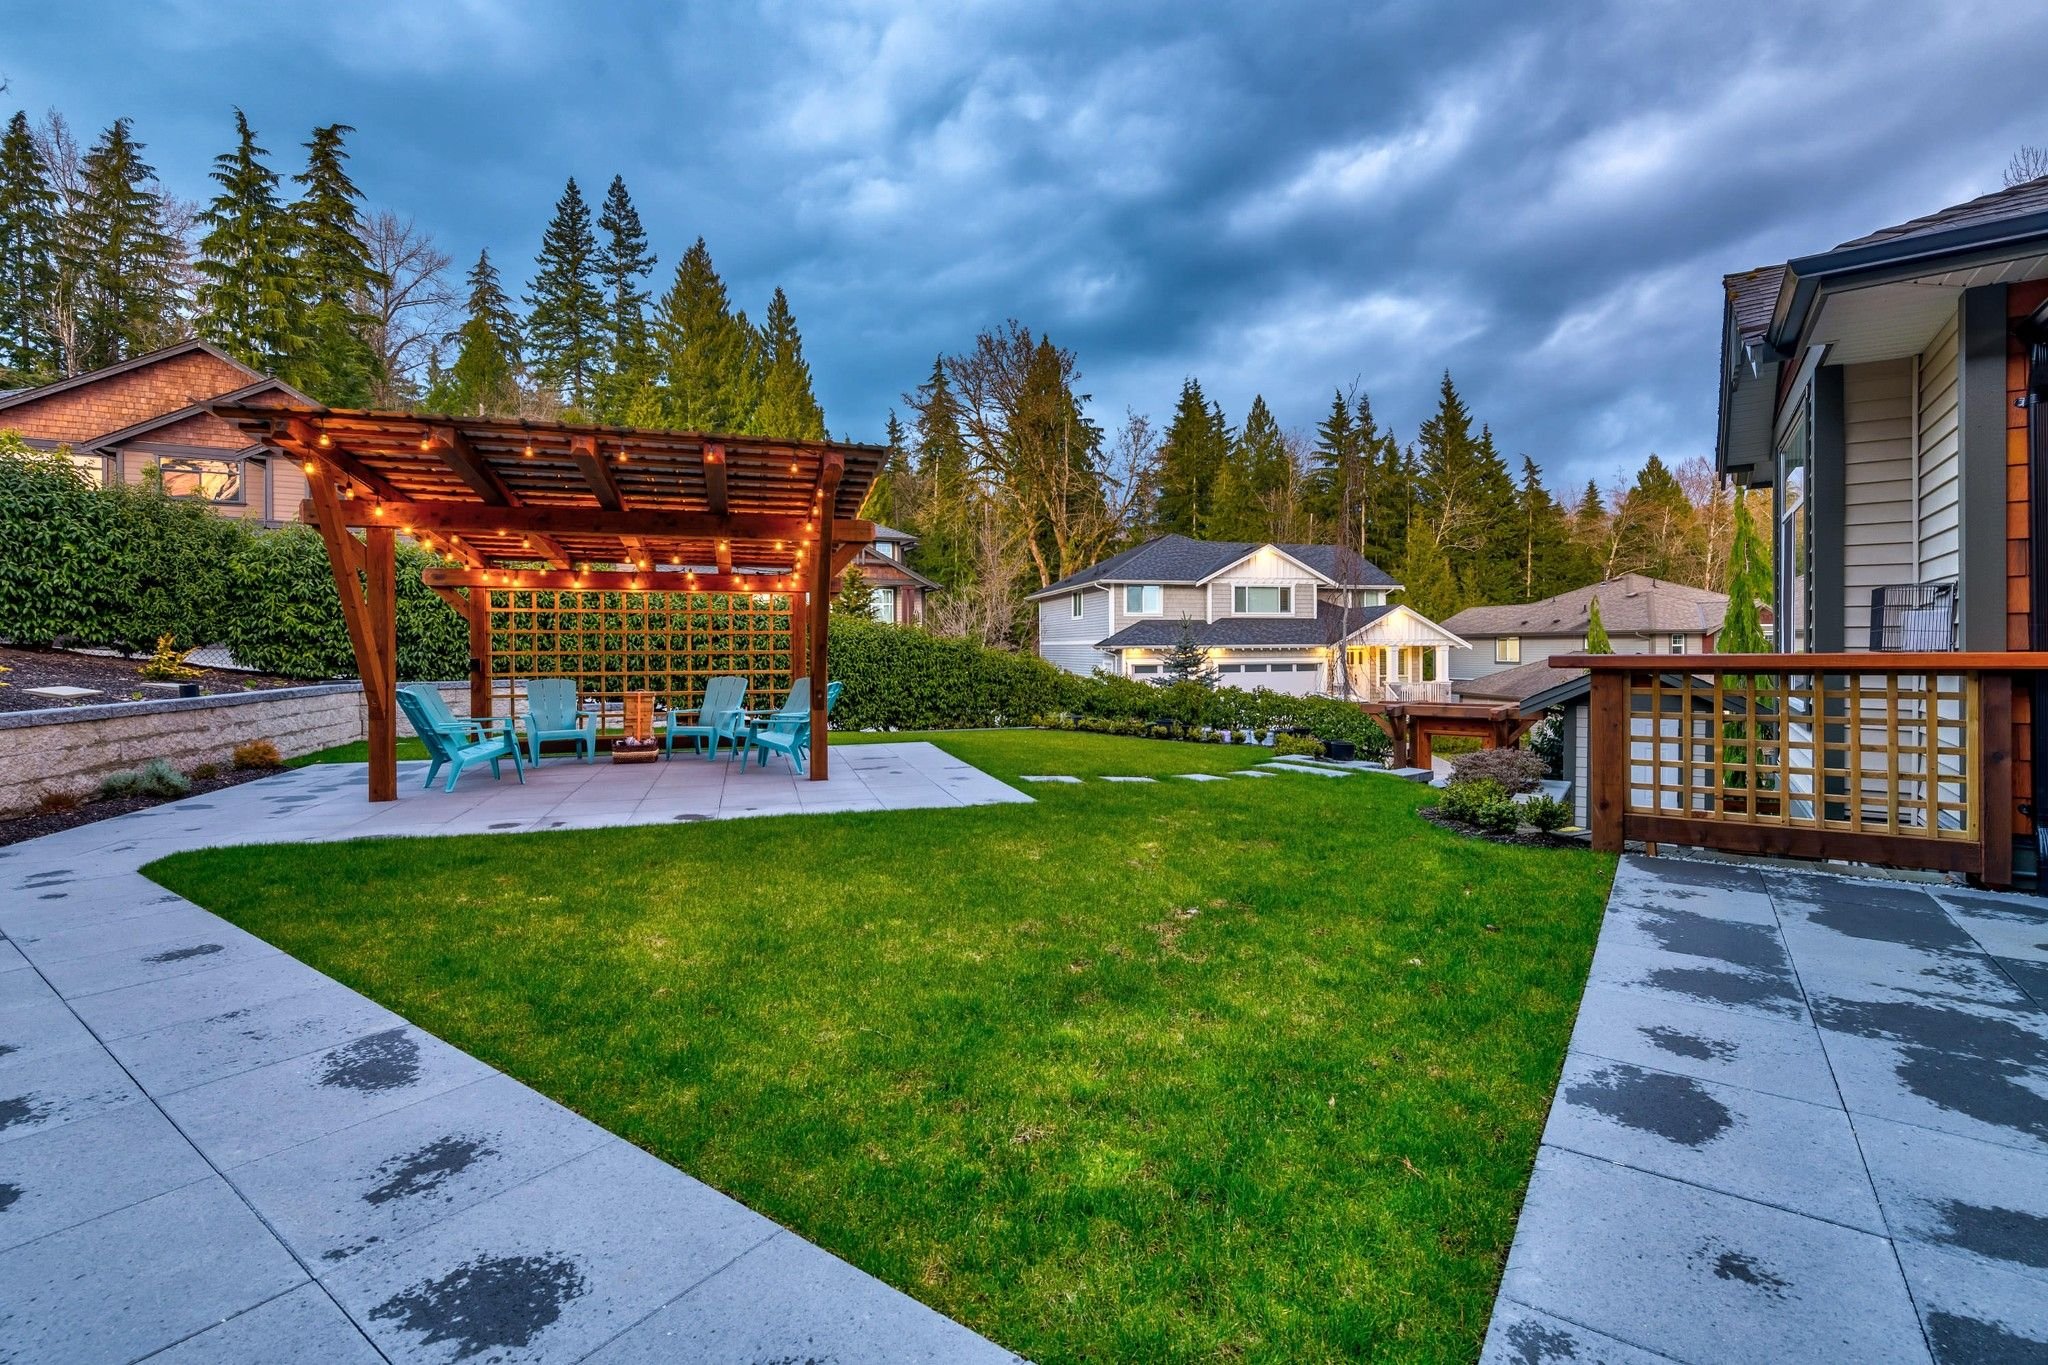 Photo 26: Photos: 16 13210 SHOESMITH CRESCENT in Maple Ridge: Silver Valley House for sale : MLS®# R2448043